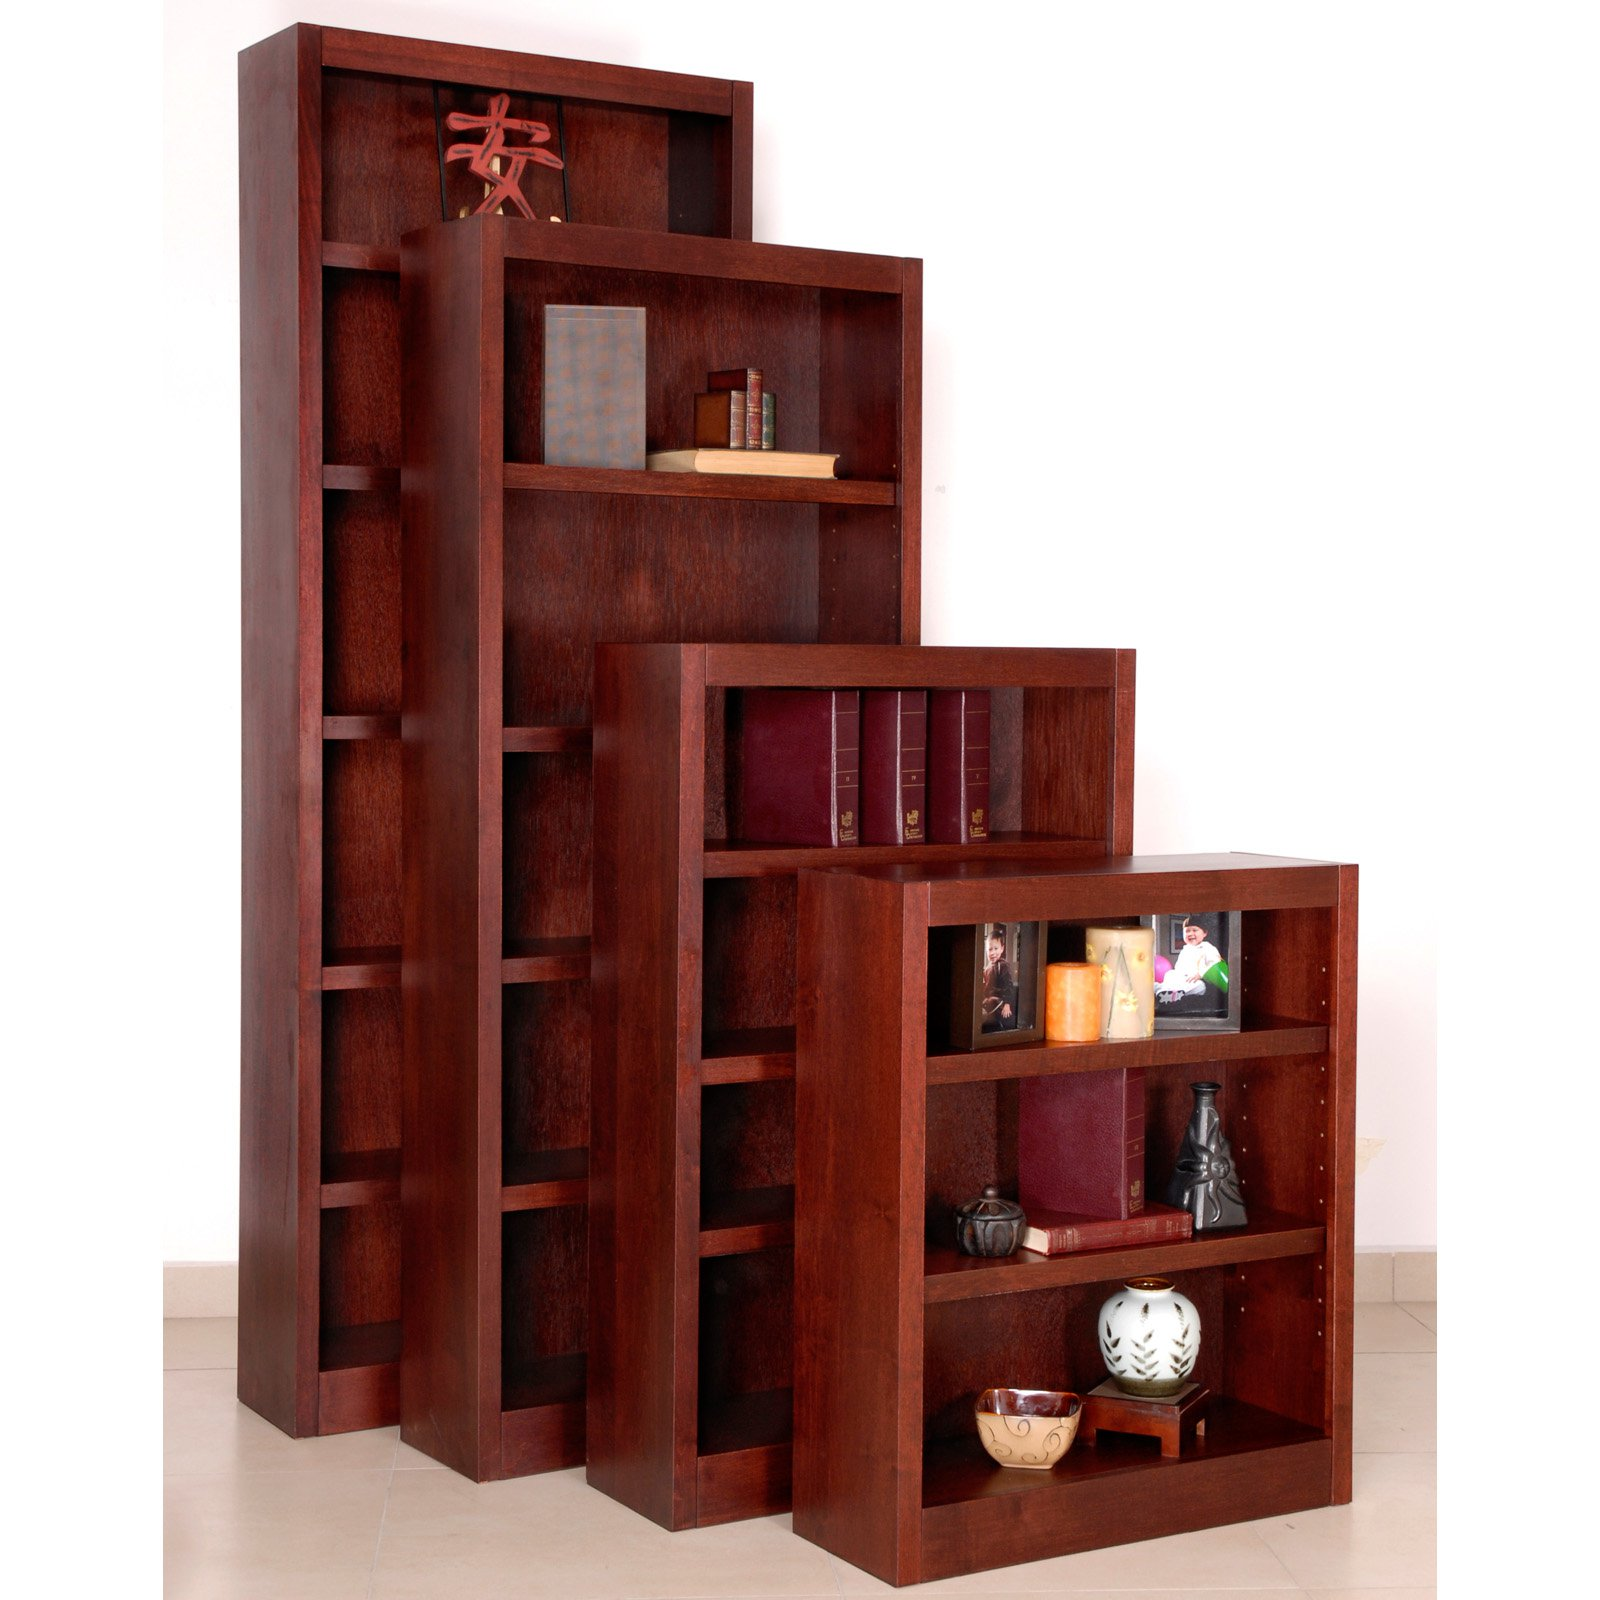 Concepts in Wood Single Bookcase